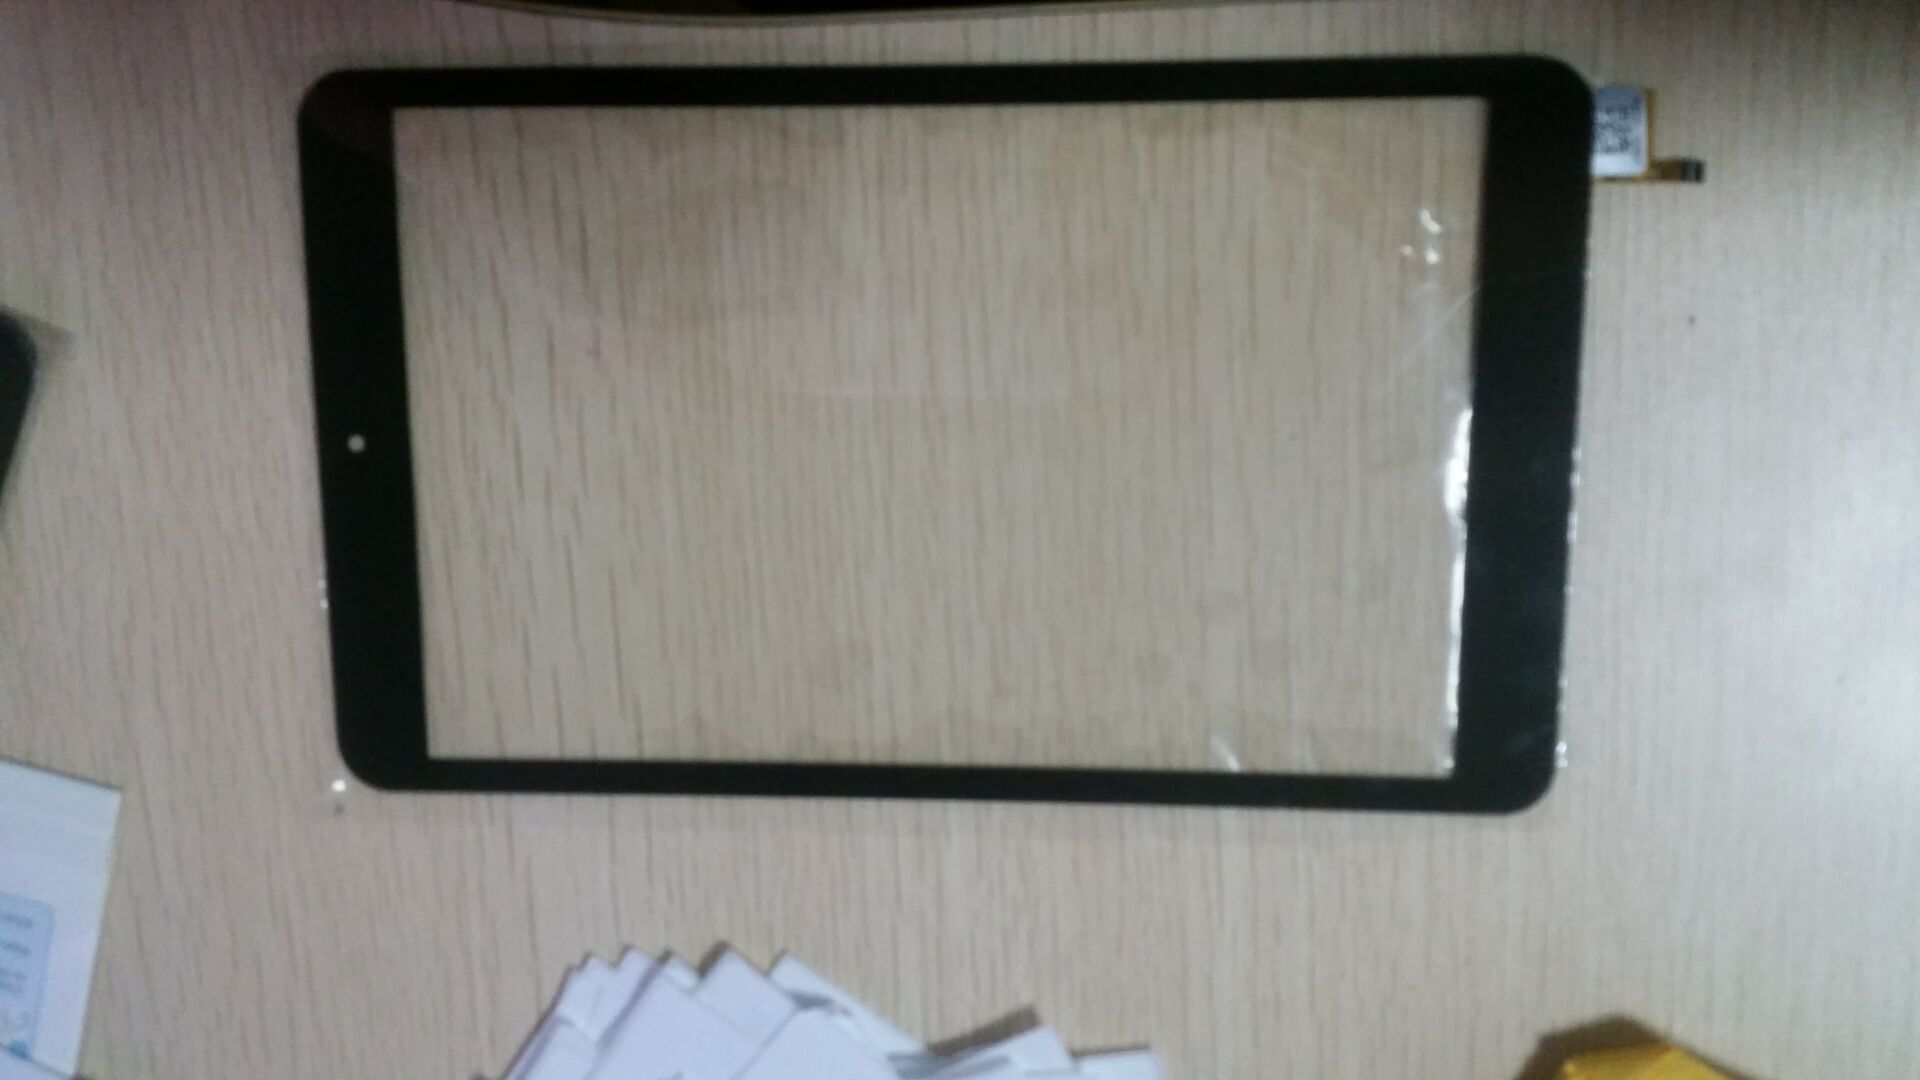 8inch black color in stock for tablet pc touch screen MO201410180037 90380-005066C 51006035A17344400004<br>